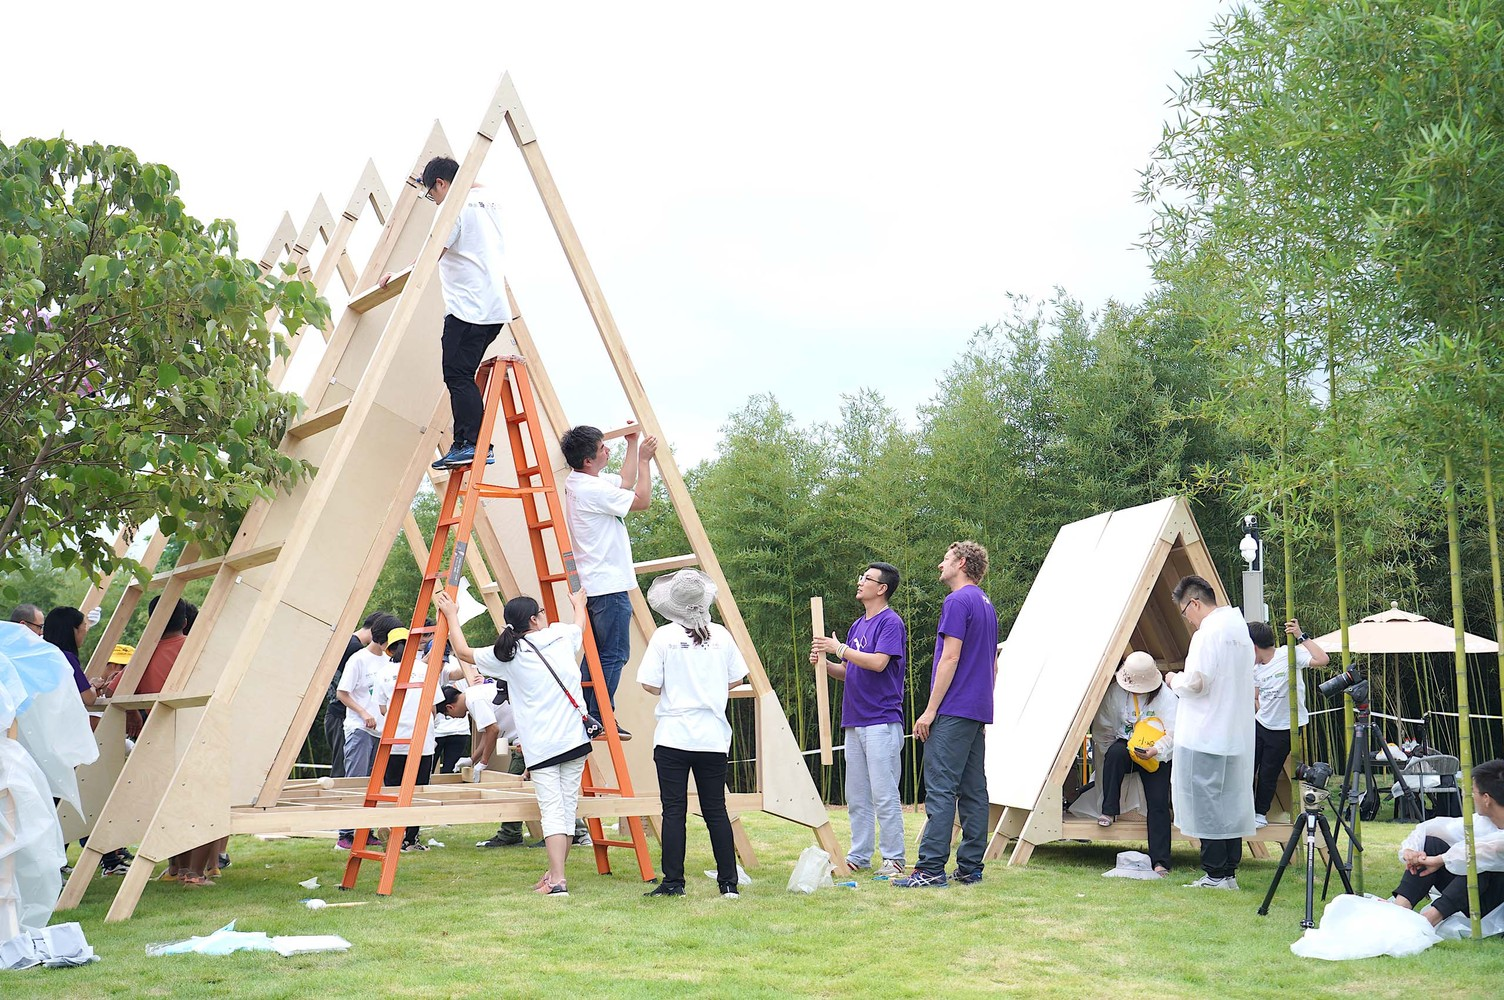 A-frame cabins go up in 5 hours, designed to bring families together